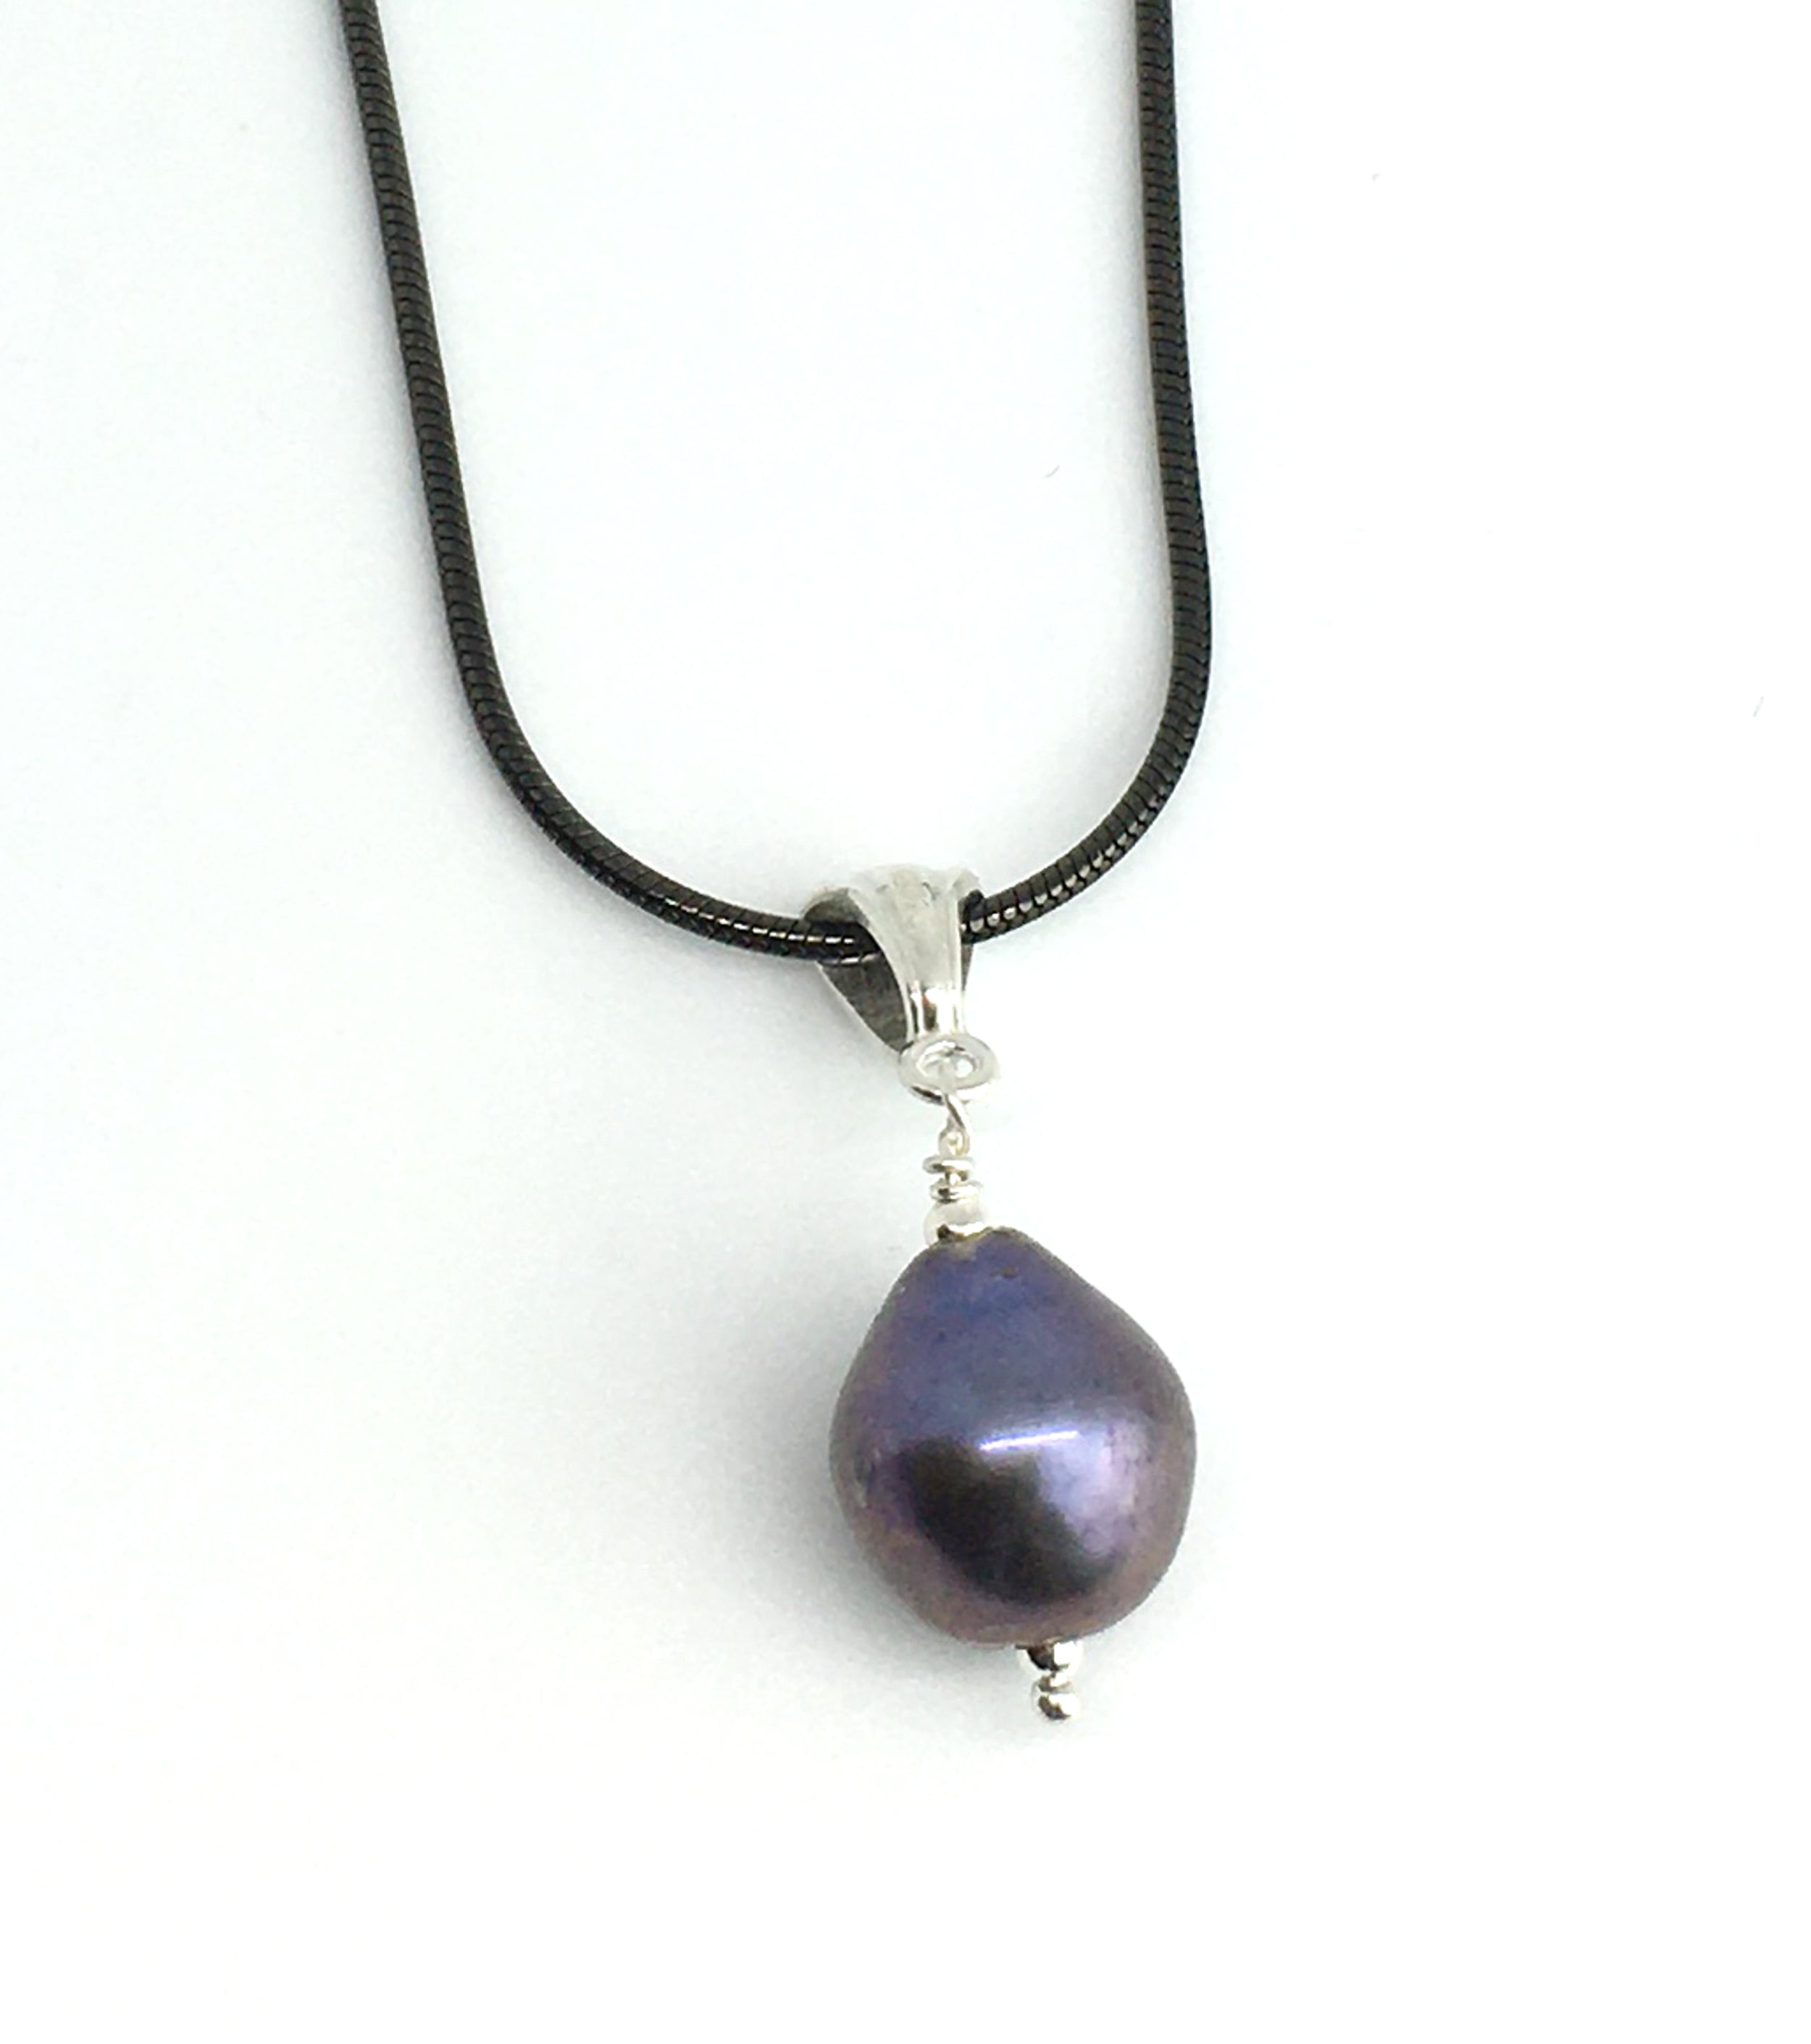 Peacock Pearl Pendant Necklace with Black Sterling Silver Snake Chain